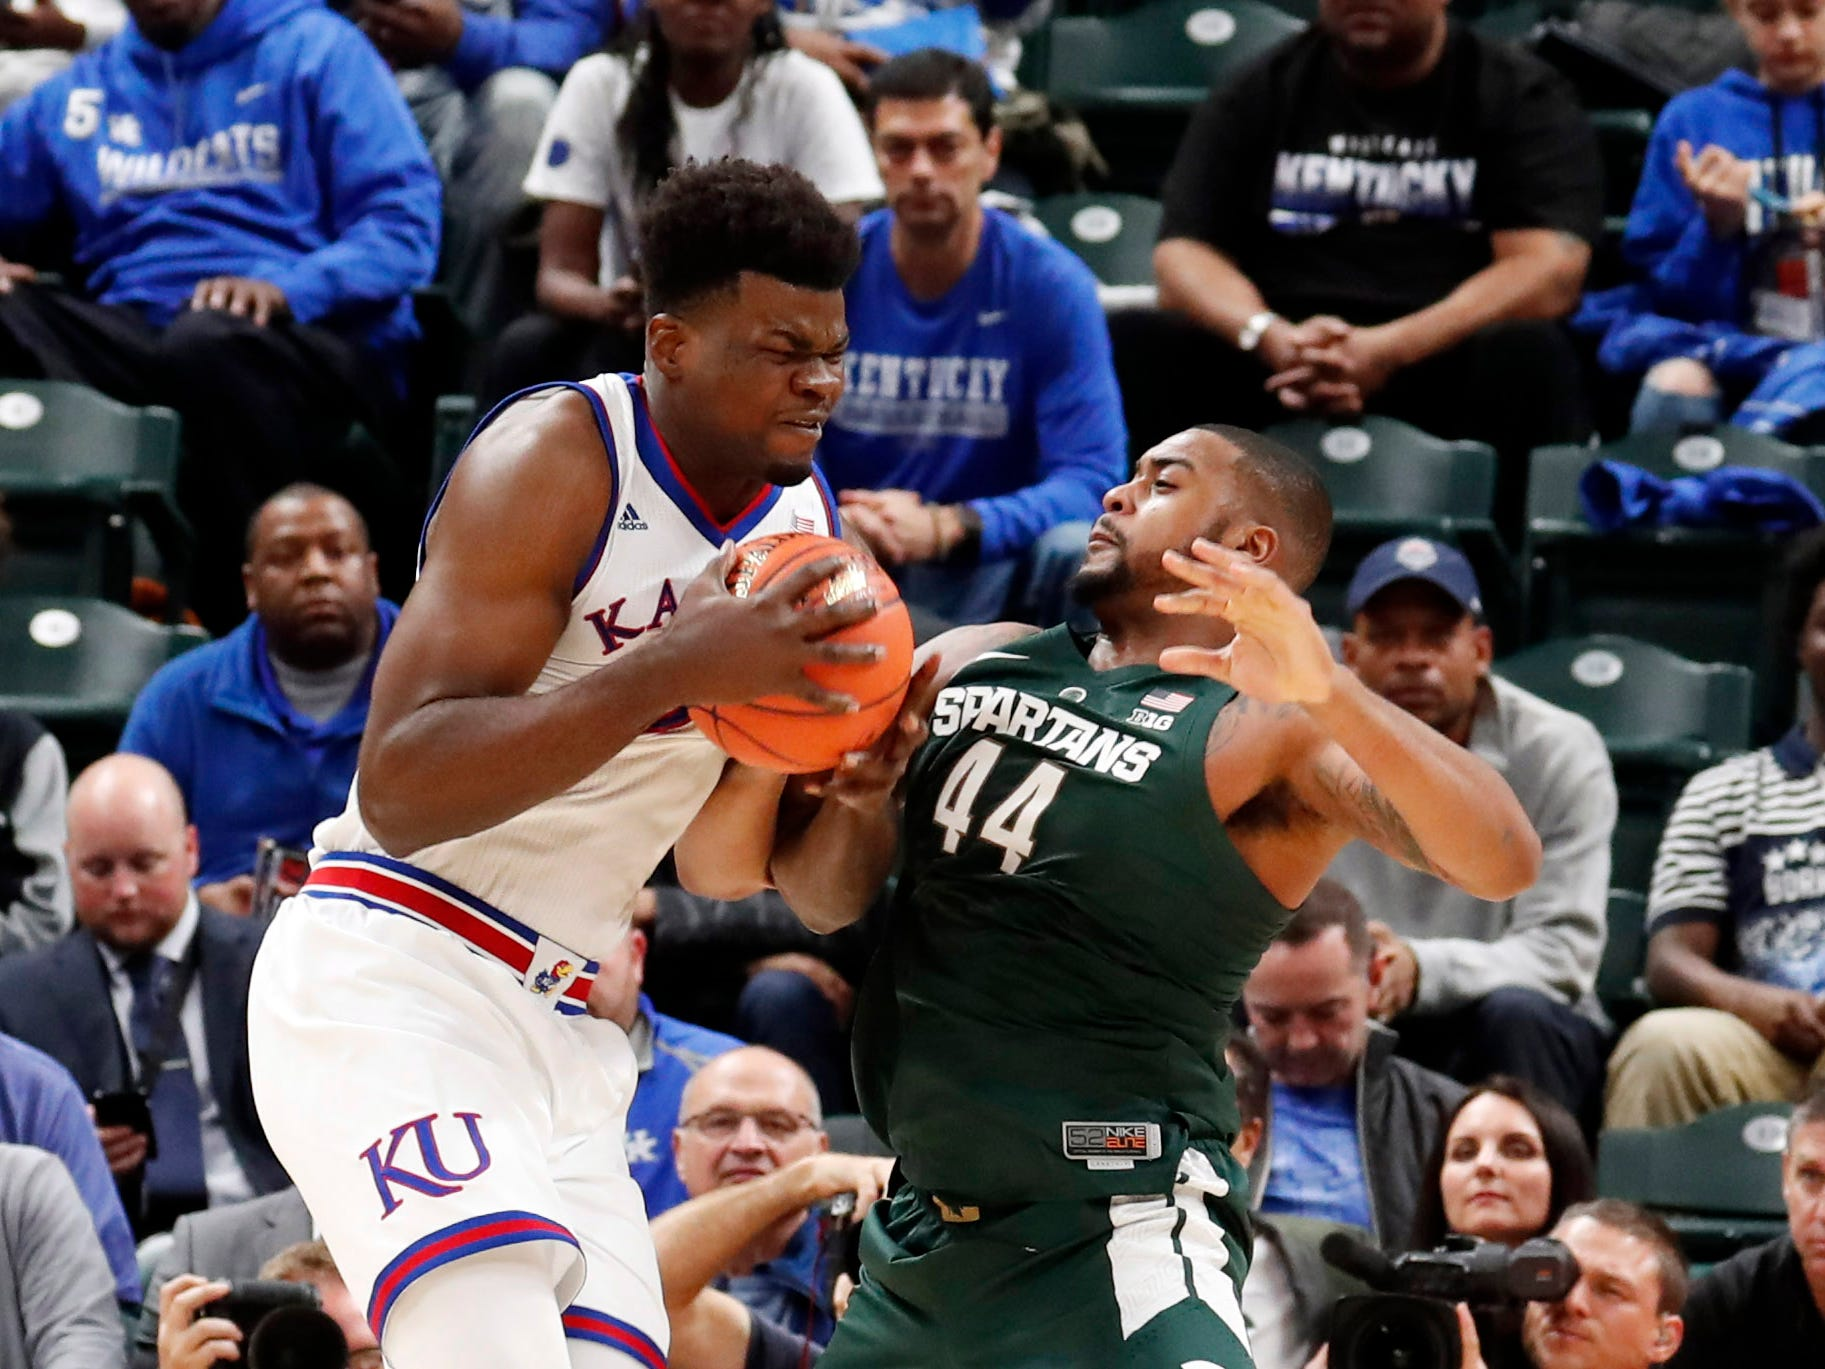 Kansas Jayhawks center Udoka Azubuike (35) is guarded by Michigan State Spartans forward Nick Ward (44) in the second half during the Champions Classic at Bankers Life Fieldhouse.